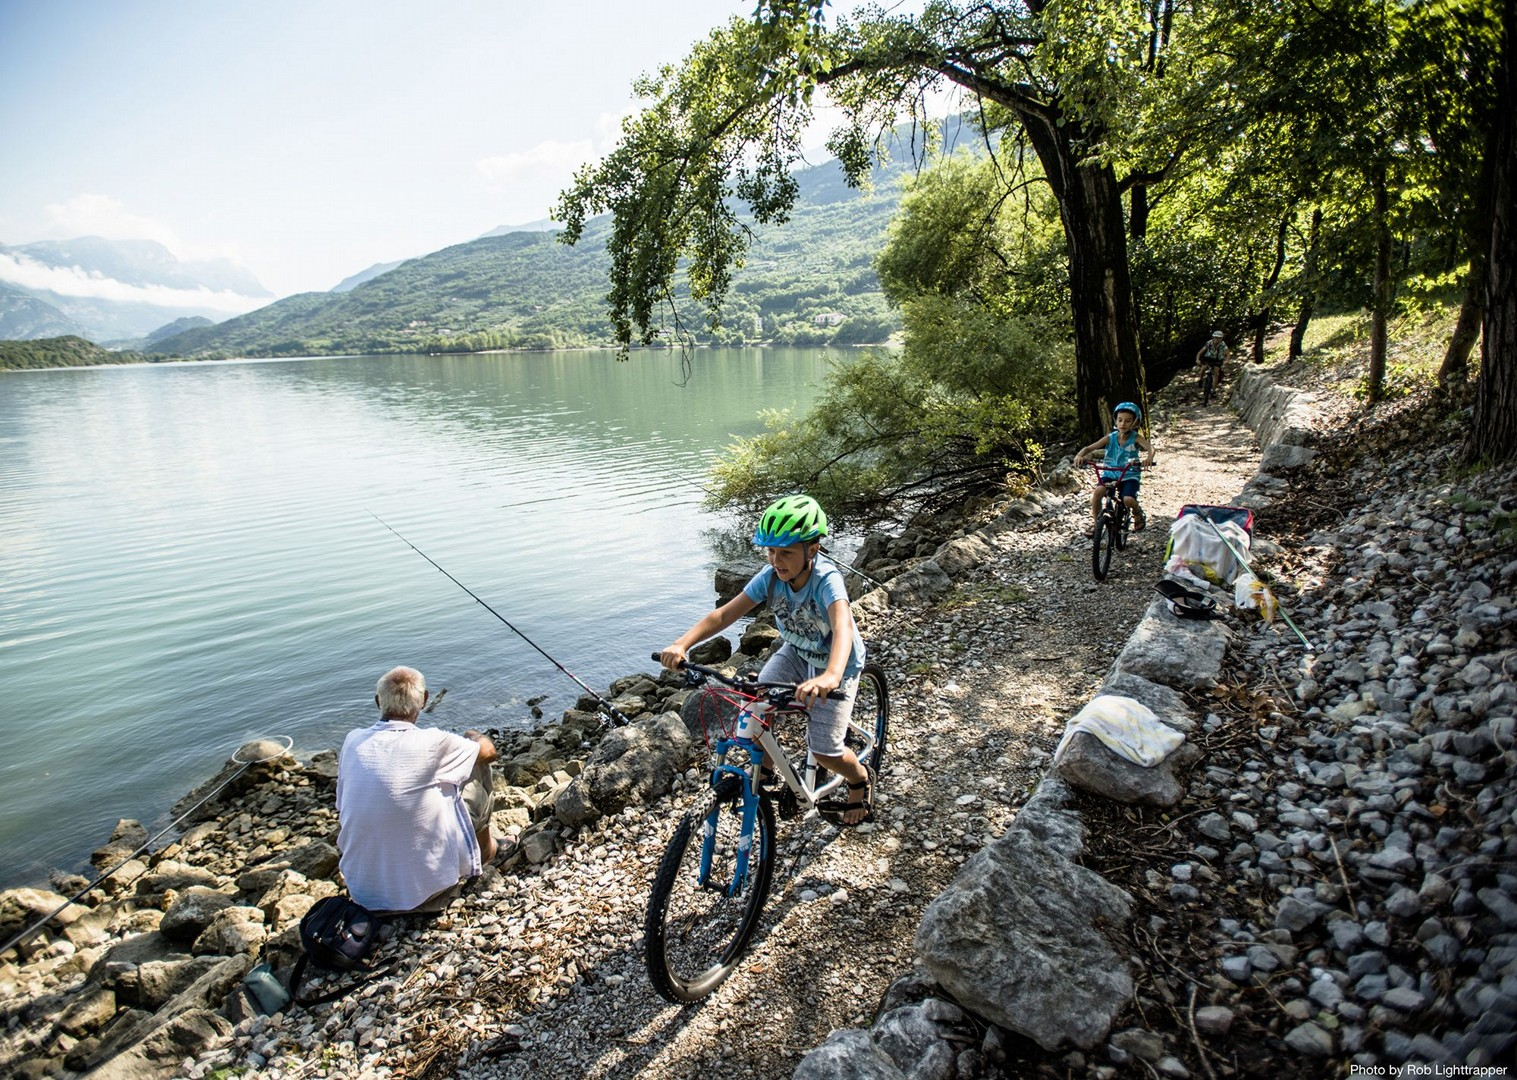 lake-garda-cycleway-italy-family-holiday.jpg - Italy - Lake Garda Explorer - Self-Guided Family Cycling Holiday - Family Cycling